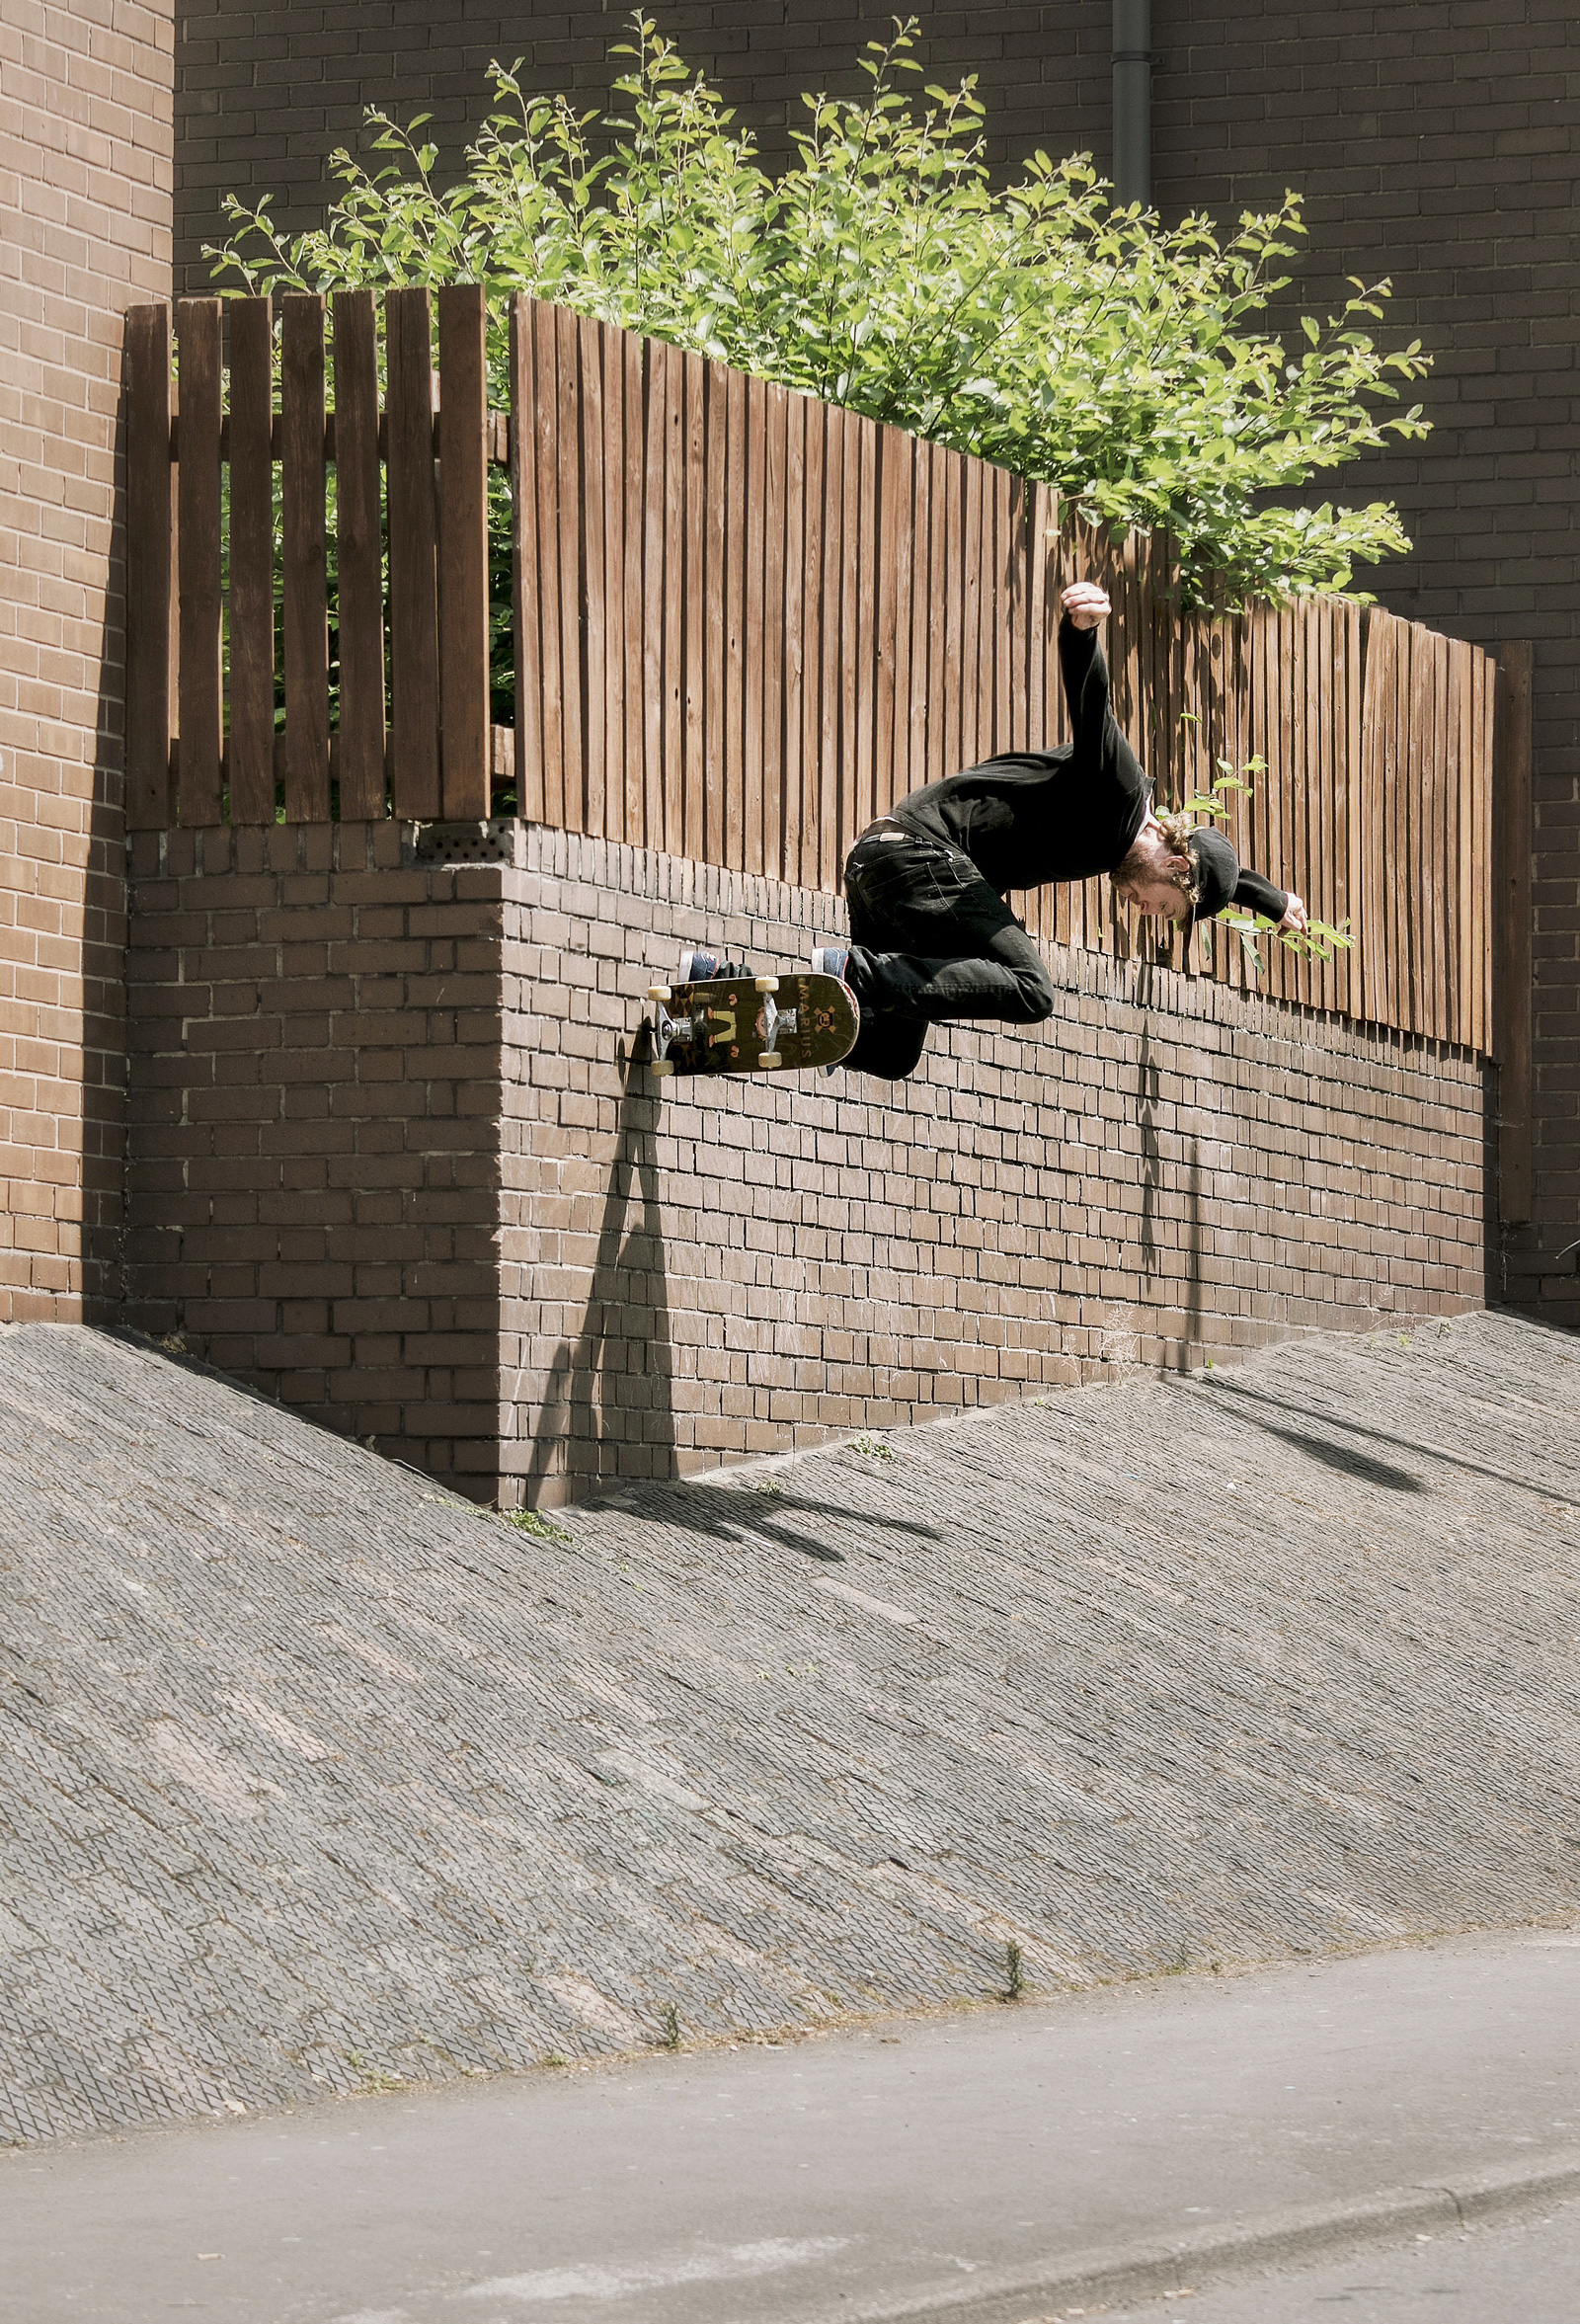 Silas Baxter-Neal, wallride backside-180, photo: Andrew Horsley